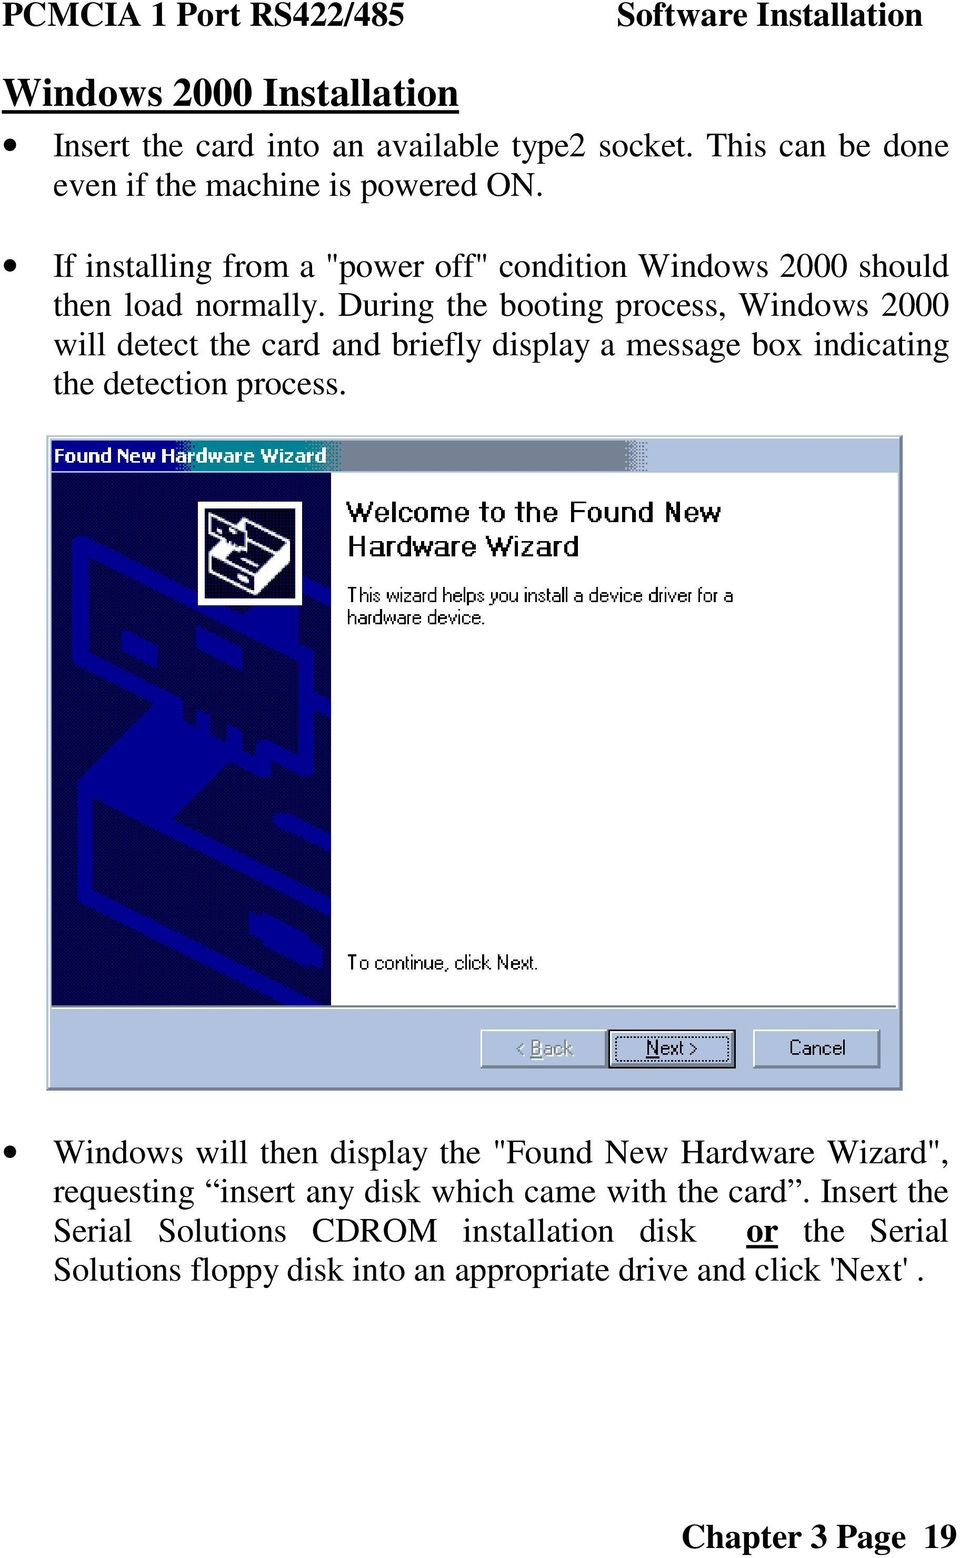 During the booting process, Windows 2000 will detect the card and briefly display a message box indicating the detection process.